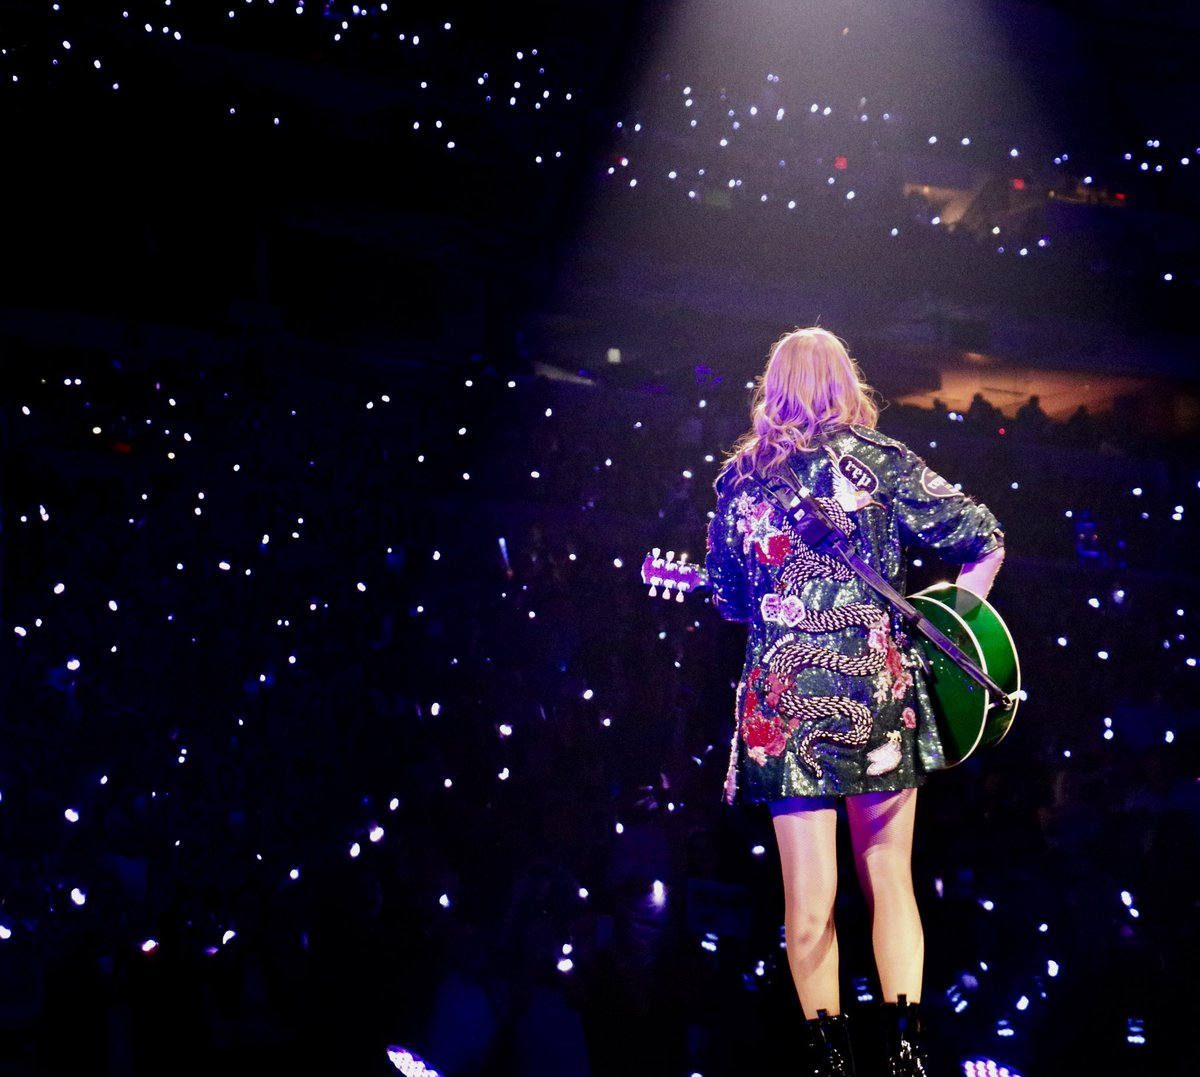 RETWEET to vote for @taylorswift13 for #AMAs Tour Of The Year! 💃